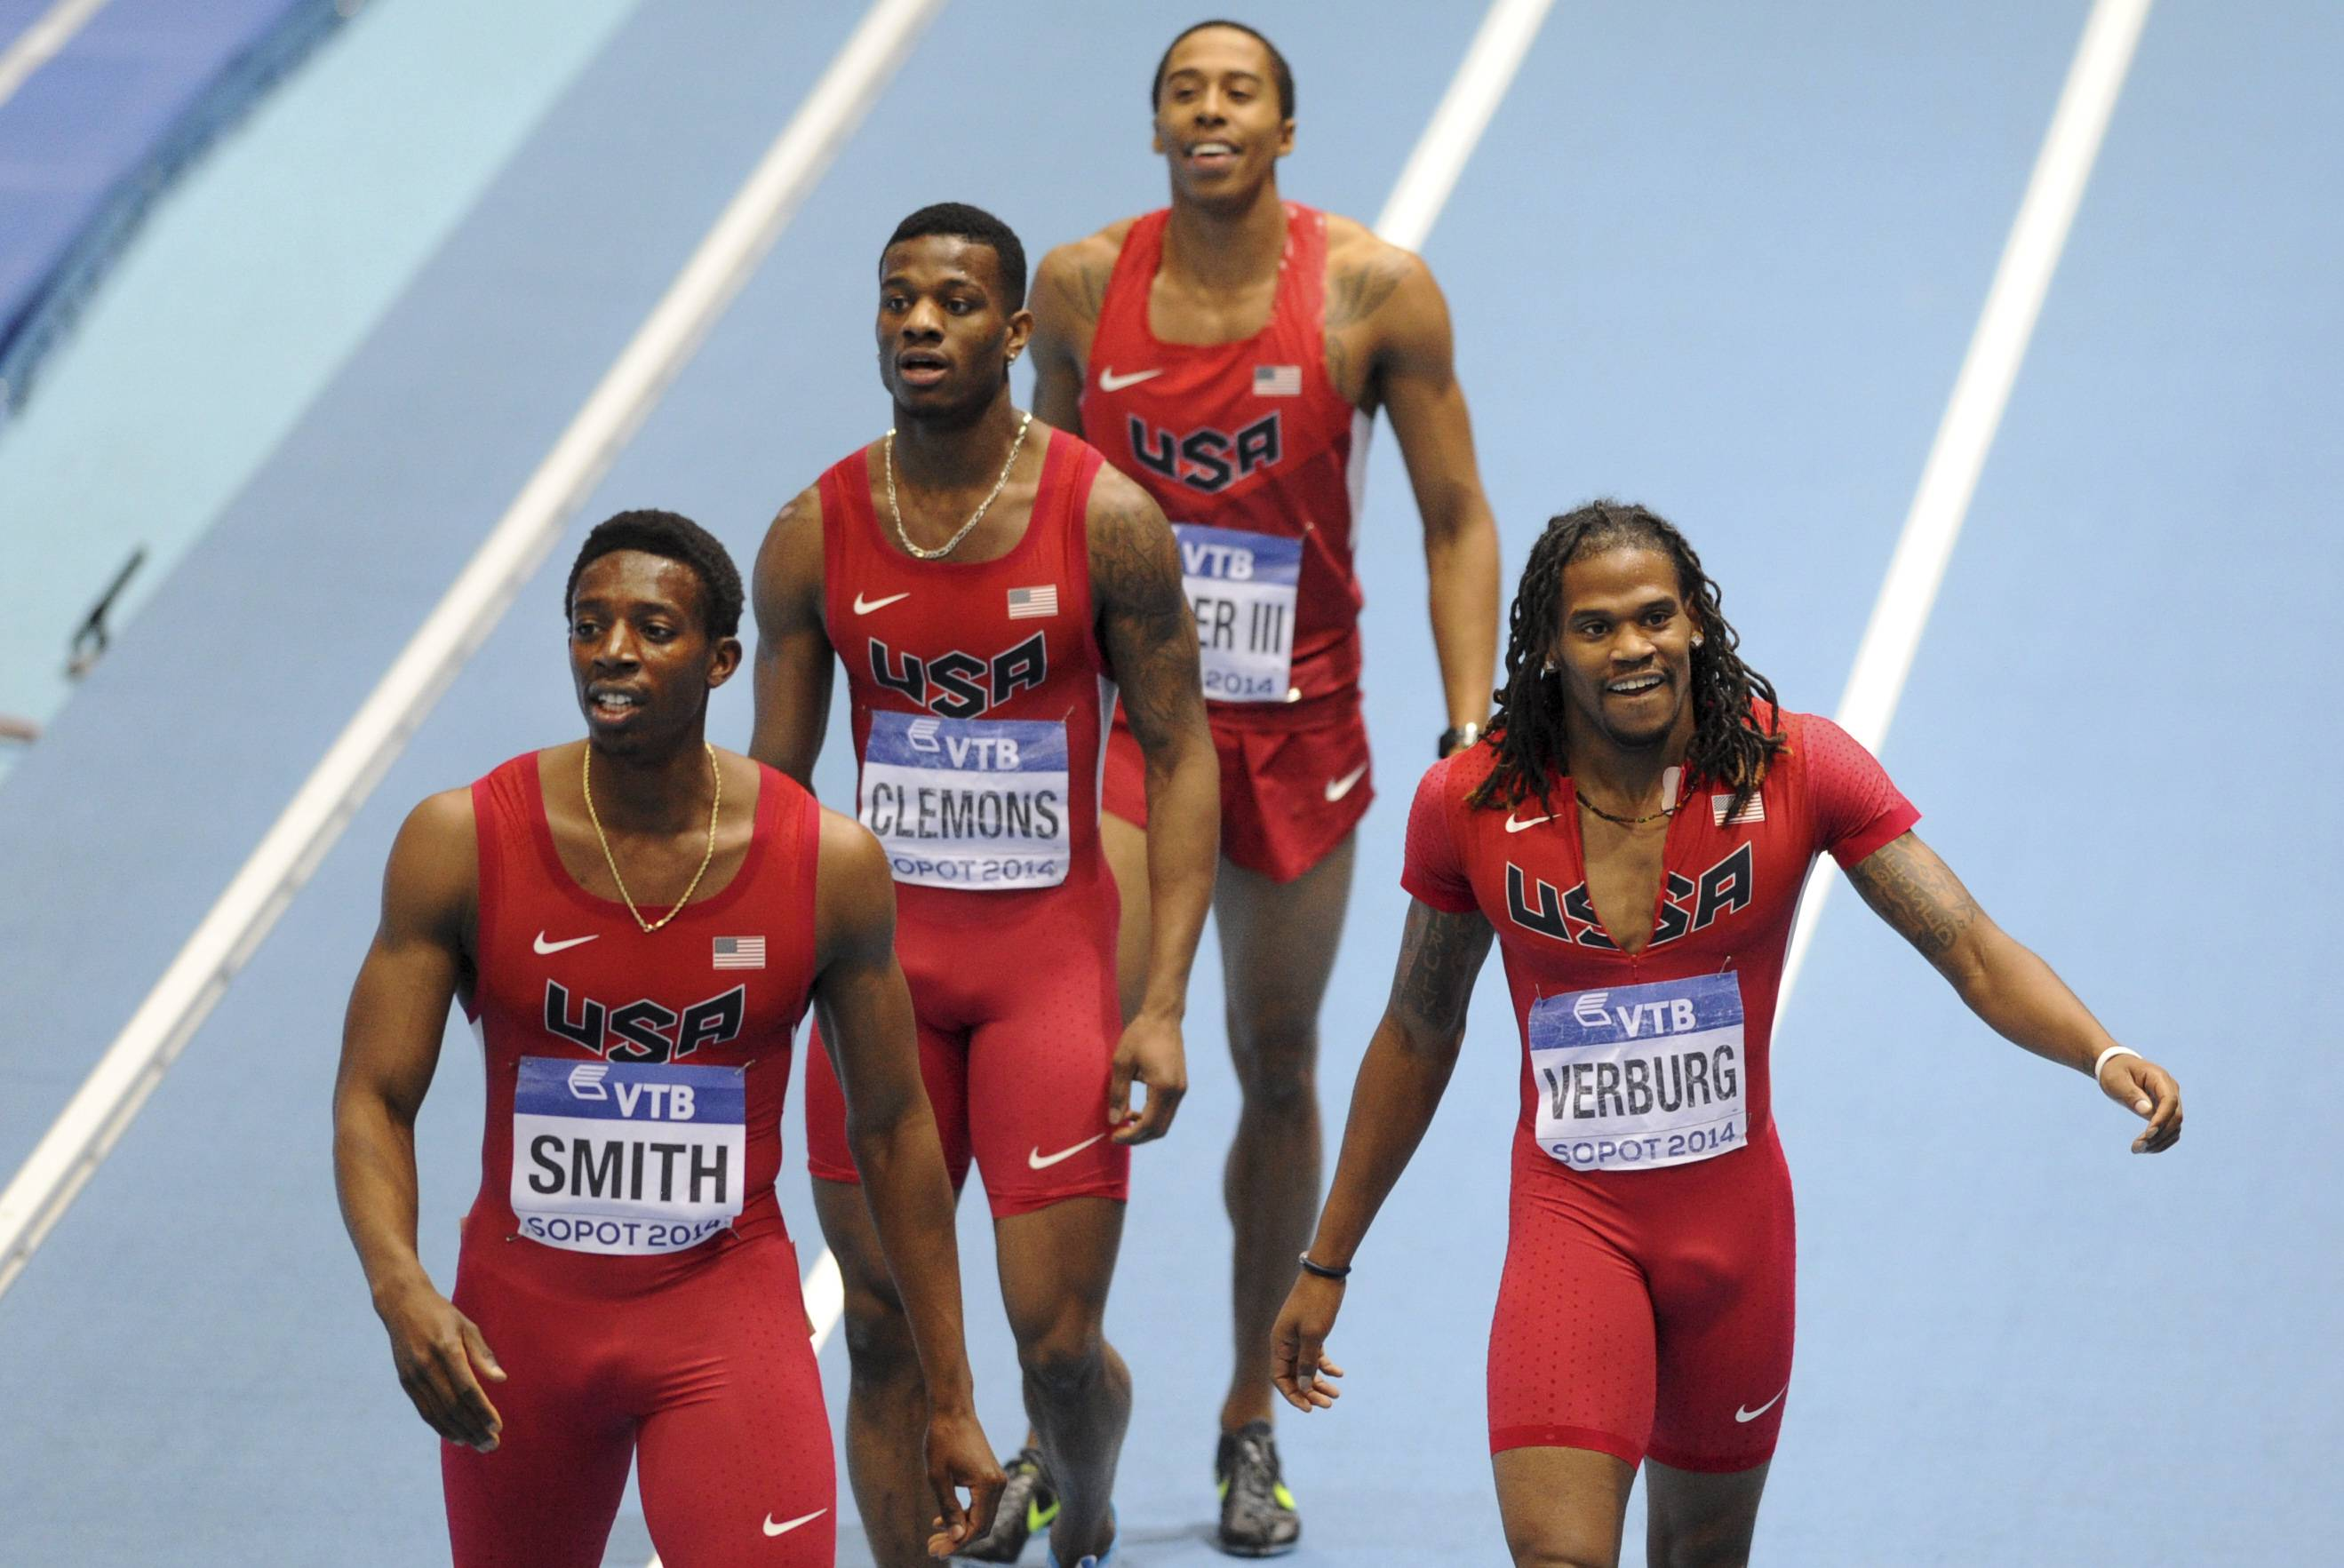 United States' Calvin Smith, Kyle Clemons, Kind Butler III and David Verburg, from left, celebrate after winning the gold and setting a new indoor world record in the men's 4x400m relay final during the Athletics Indoor World Championships in Sopot, Poland.